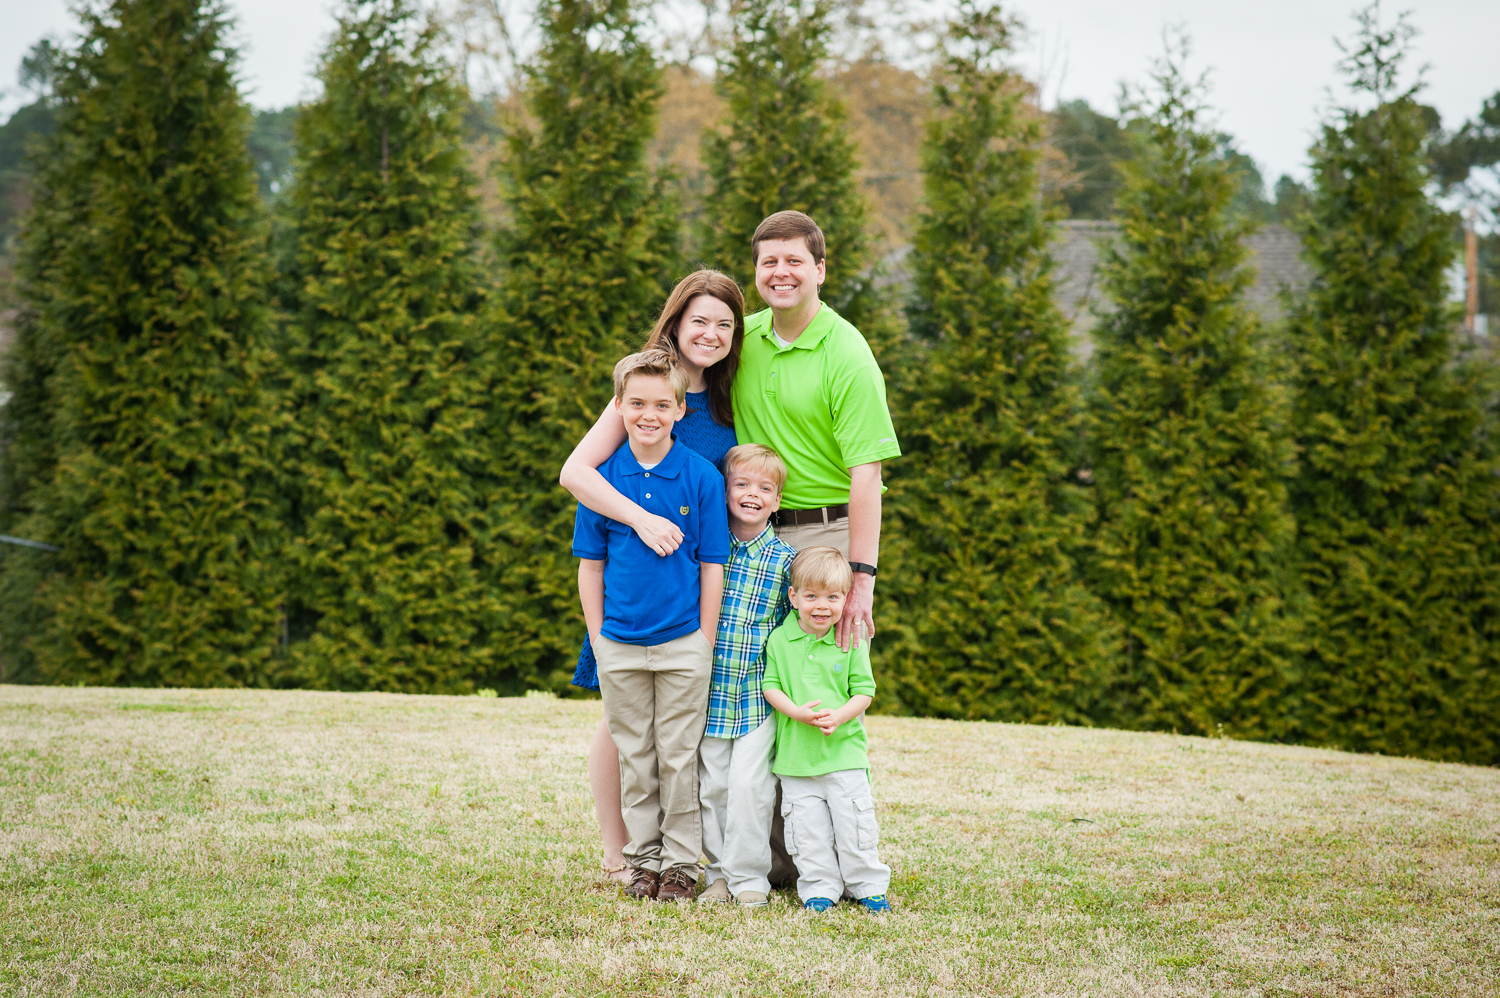 mom, dad, and 3 sons standing in grass   Huntsville photographer